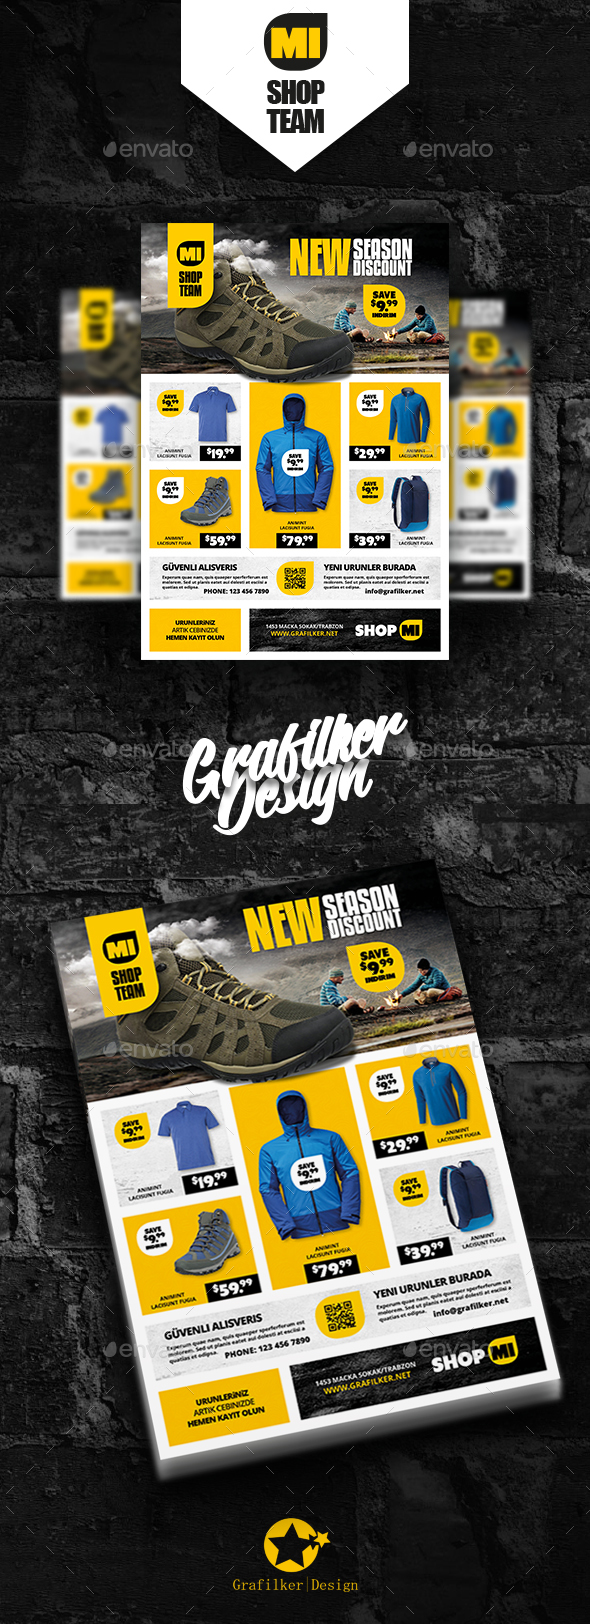 Shopping Product Flyer Templates - Commerce Flyers